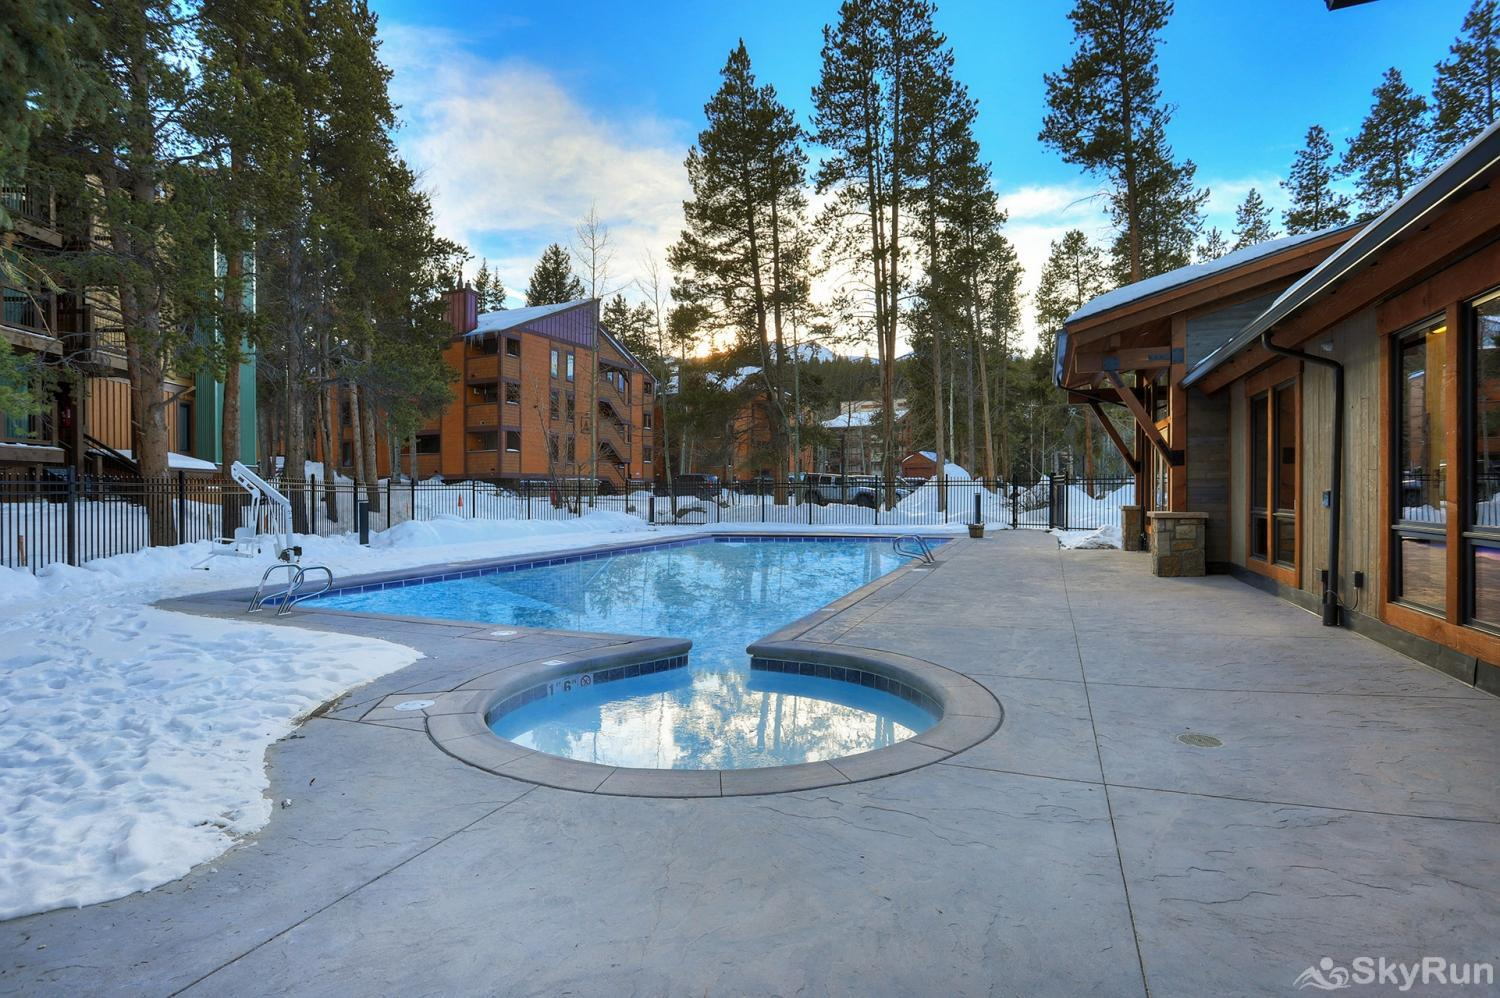 The Lift C112 Outdoor heated pool and hot tubs at the Columbine Pool Complex